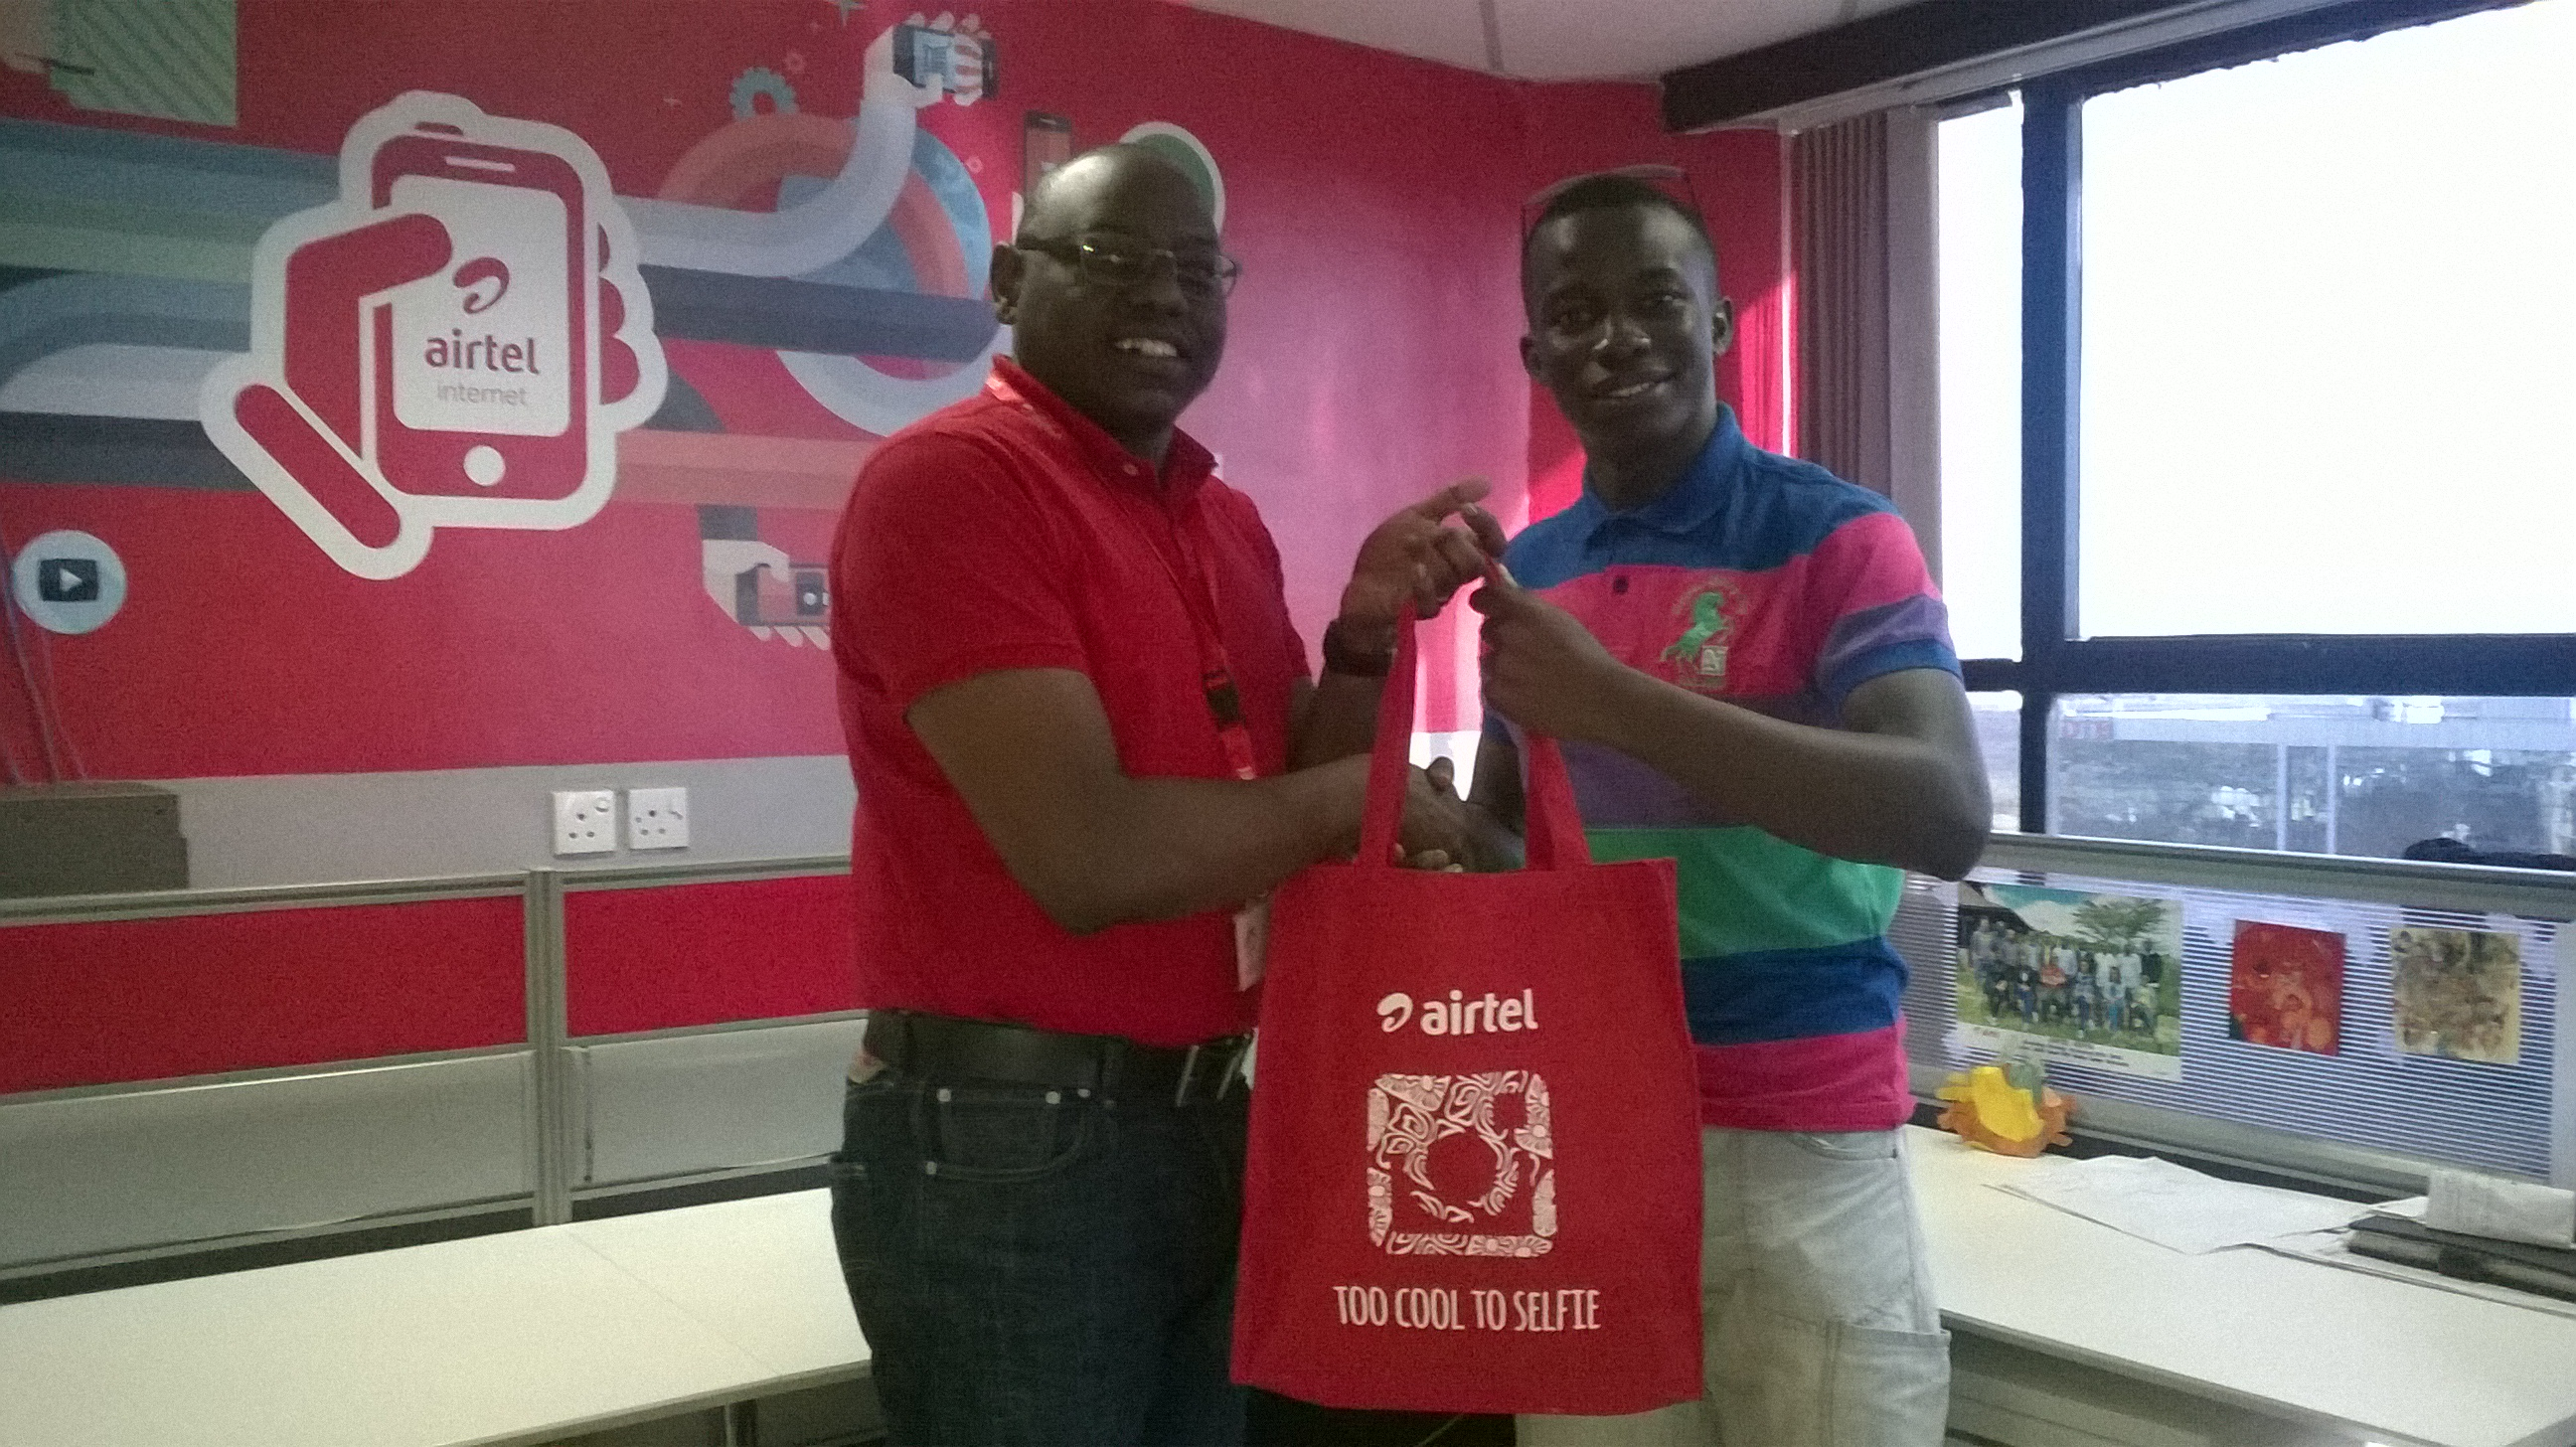 Airtel Kenya Marketing Director presents a gift bag to Paul Kidero, the winner of the Airtel's #Instameet competition.